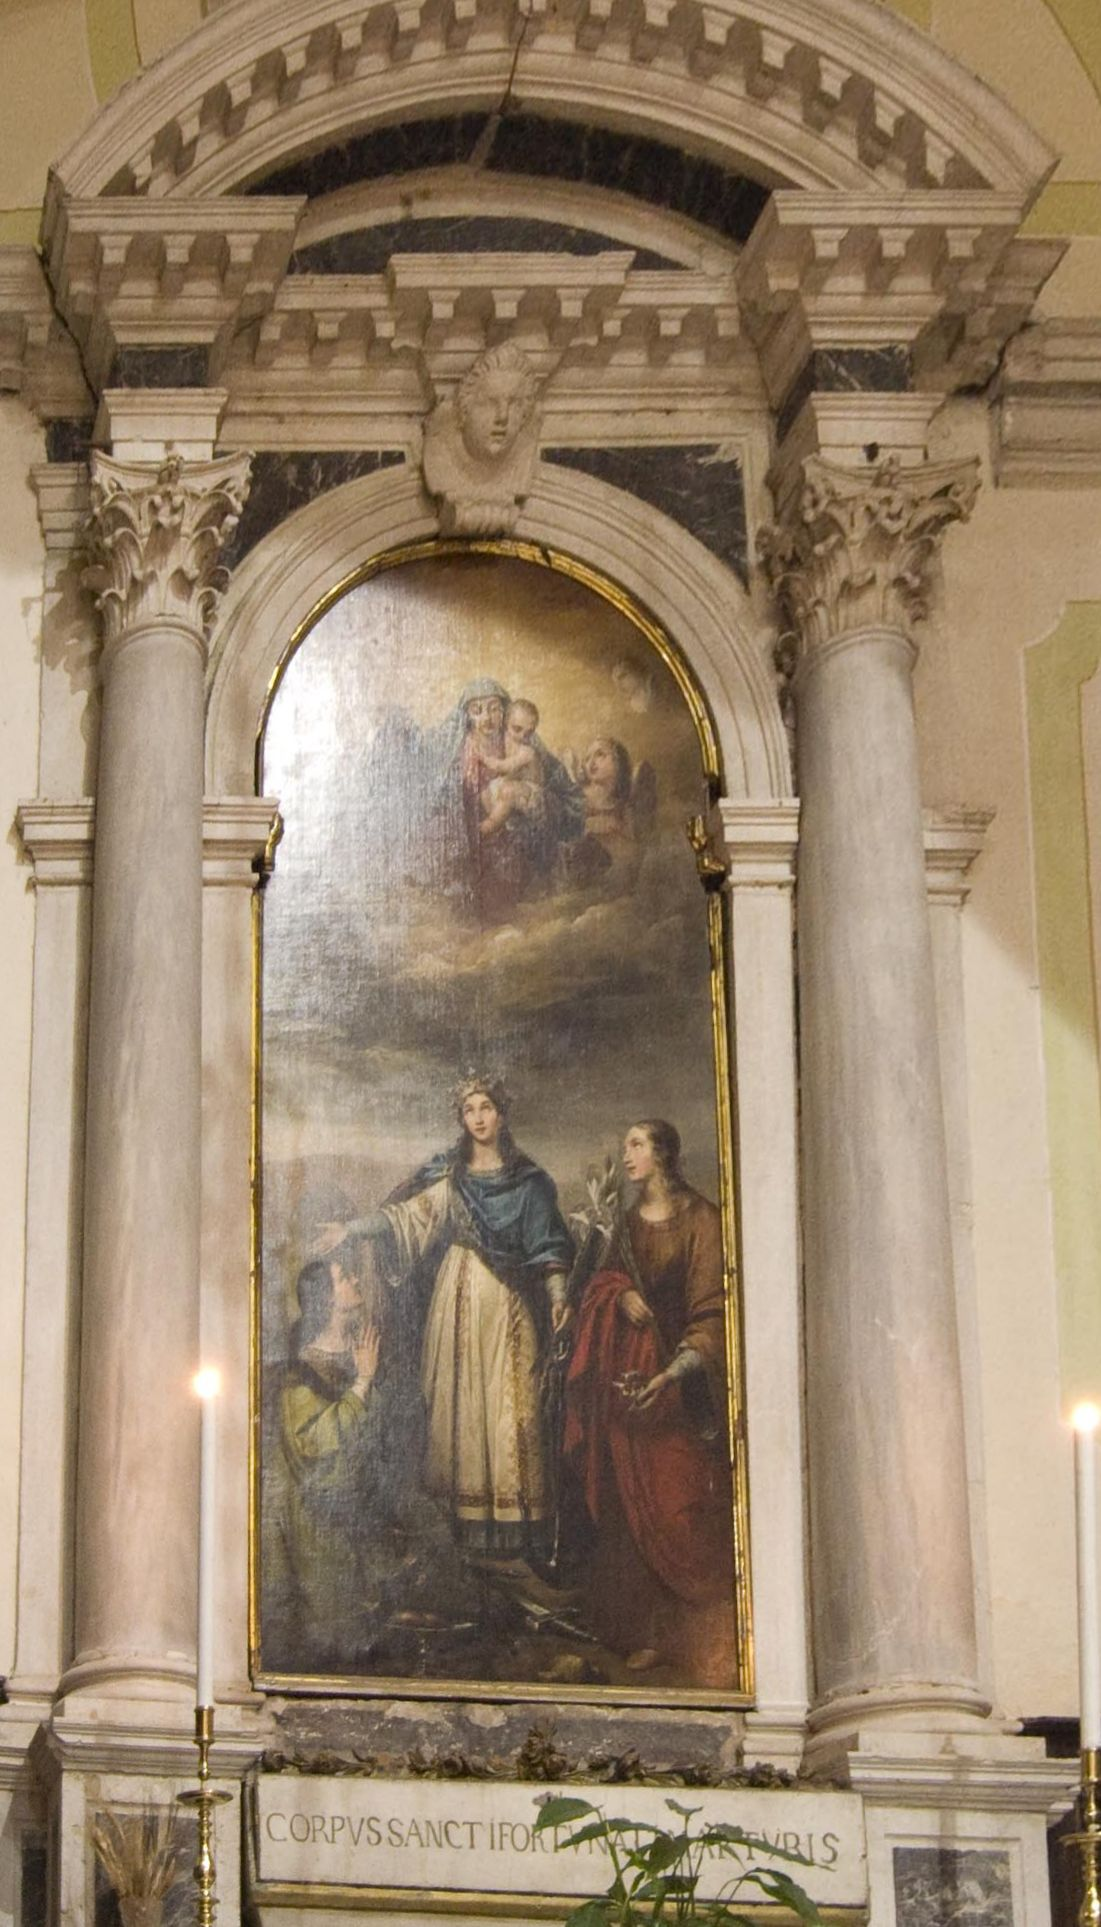 Saints Filomena, Lucy and Agatha by Cosroe Dusi, San Martino, Venice, Italy